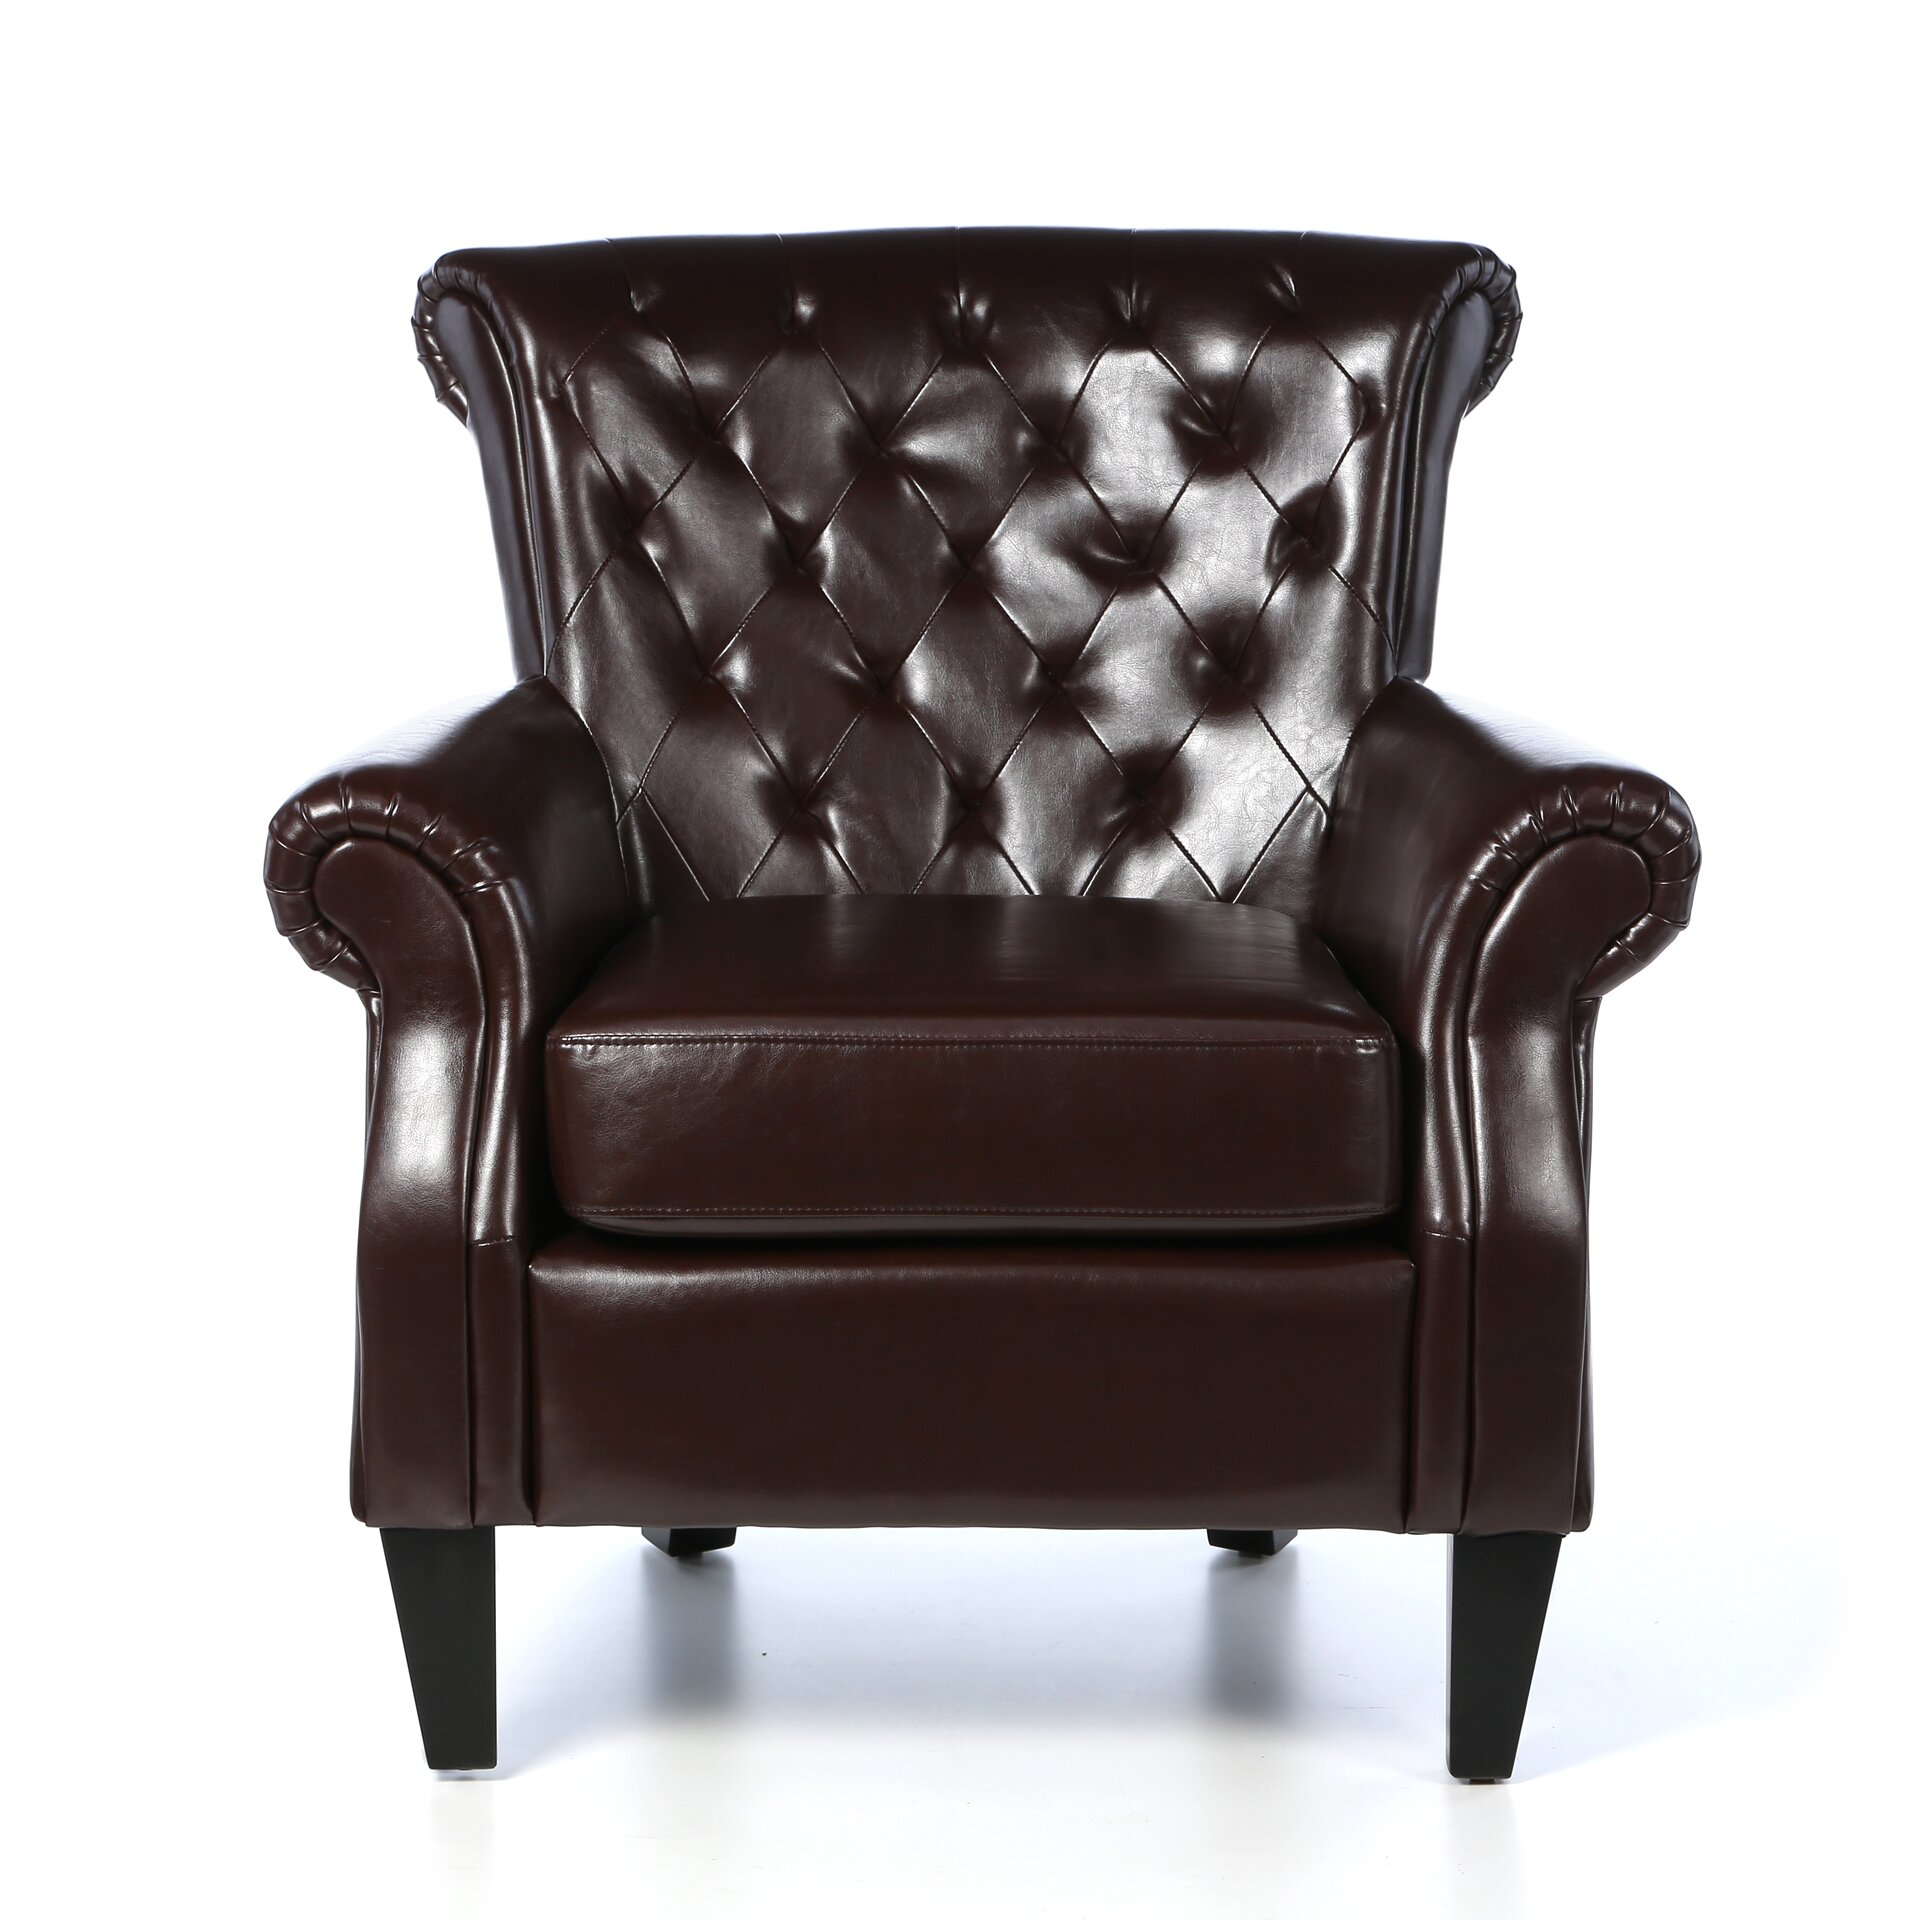 Home loft concepts mcclain tufted upholstered club chair reviews wayfair - Upholstered chairs for small spaces concept ...